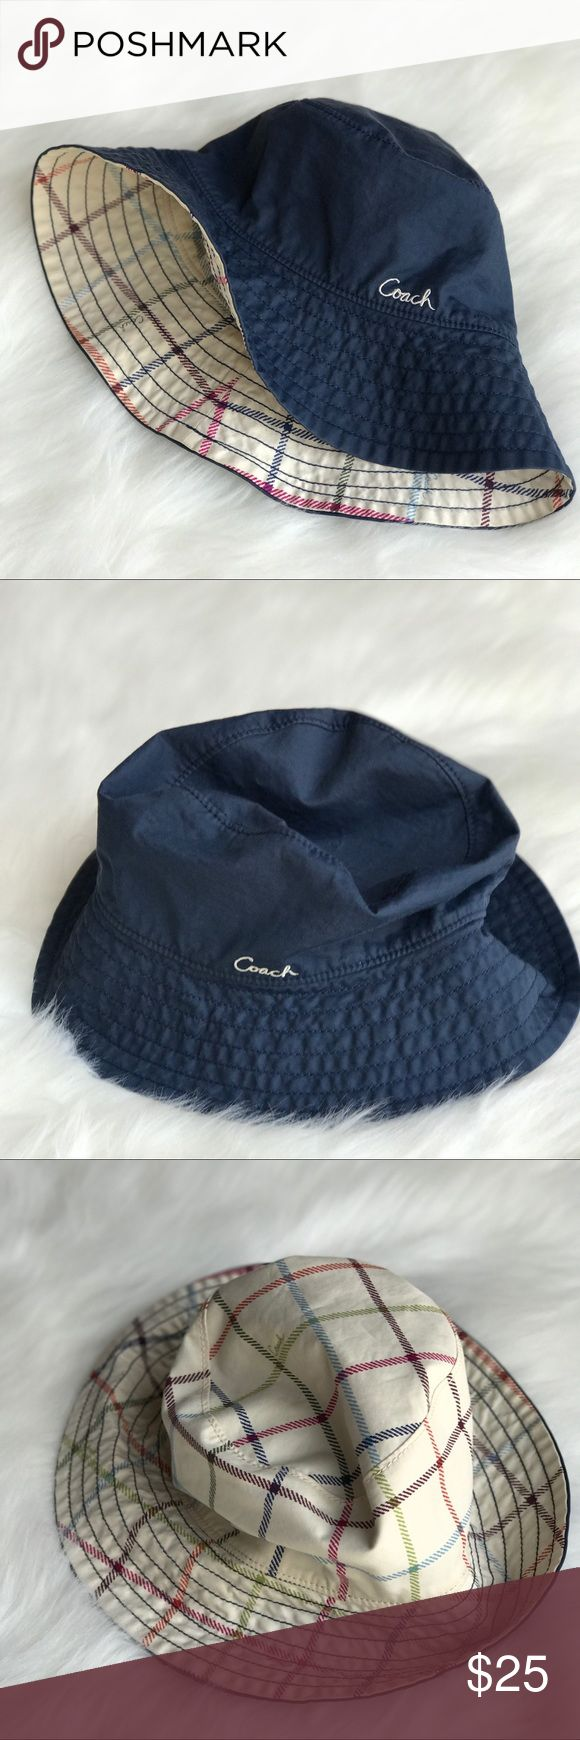 Coach Hat Cute Coach hat. Cotton. Reversible. Great used condition. Coach Accessories Hats